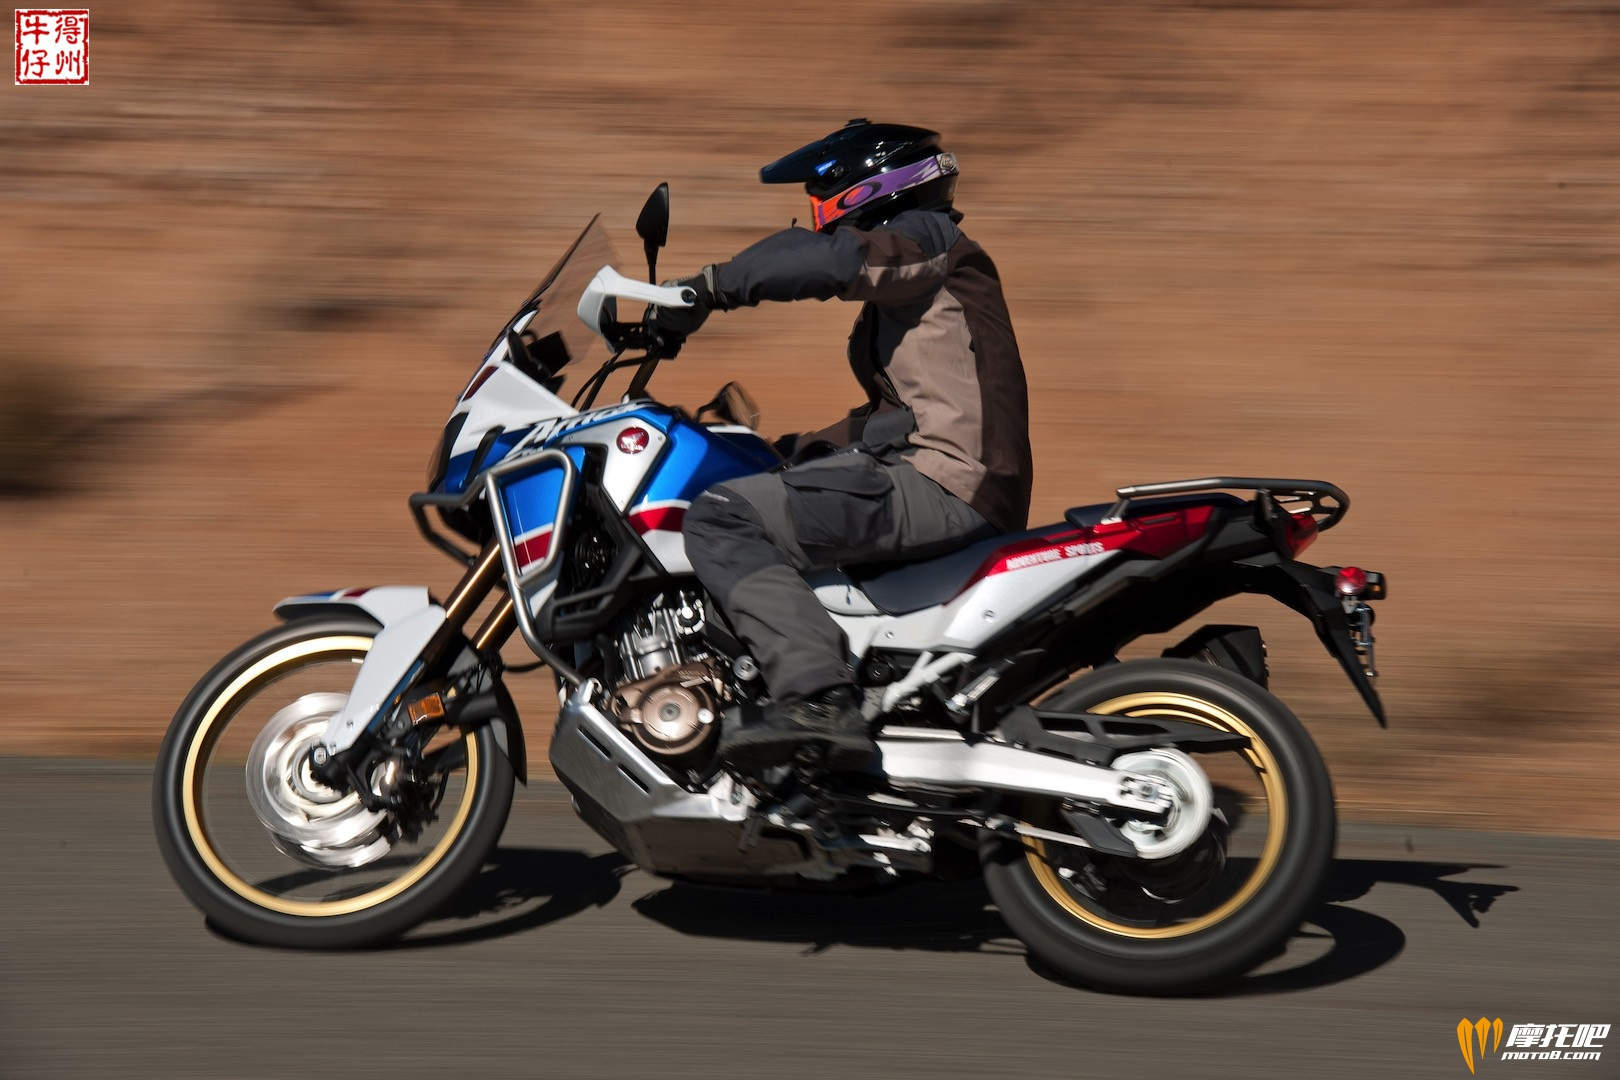 2018-Honda-CRF1000L2-Africa-Twin-Adventure-Sports-Review-ADV-Motorcycle-4.jpg